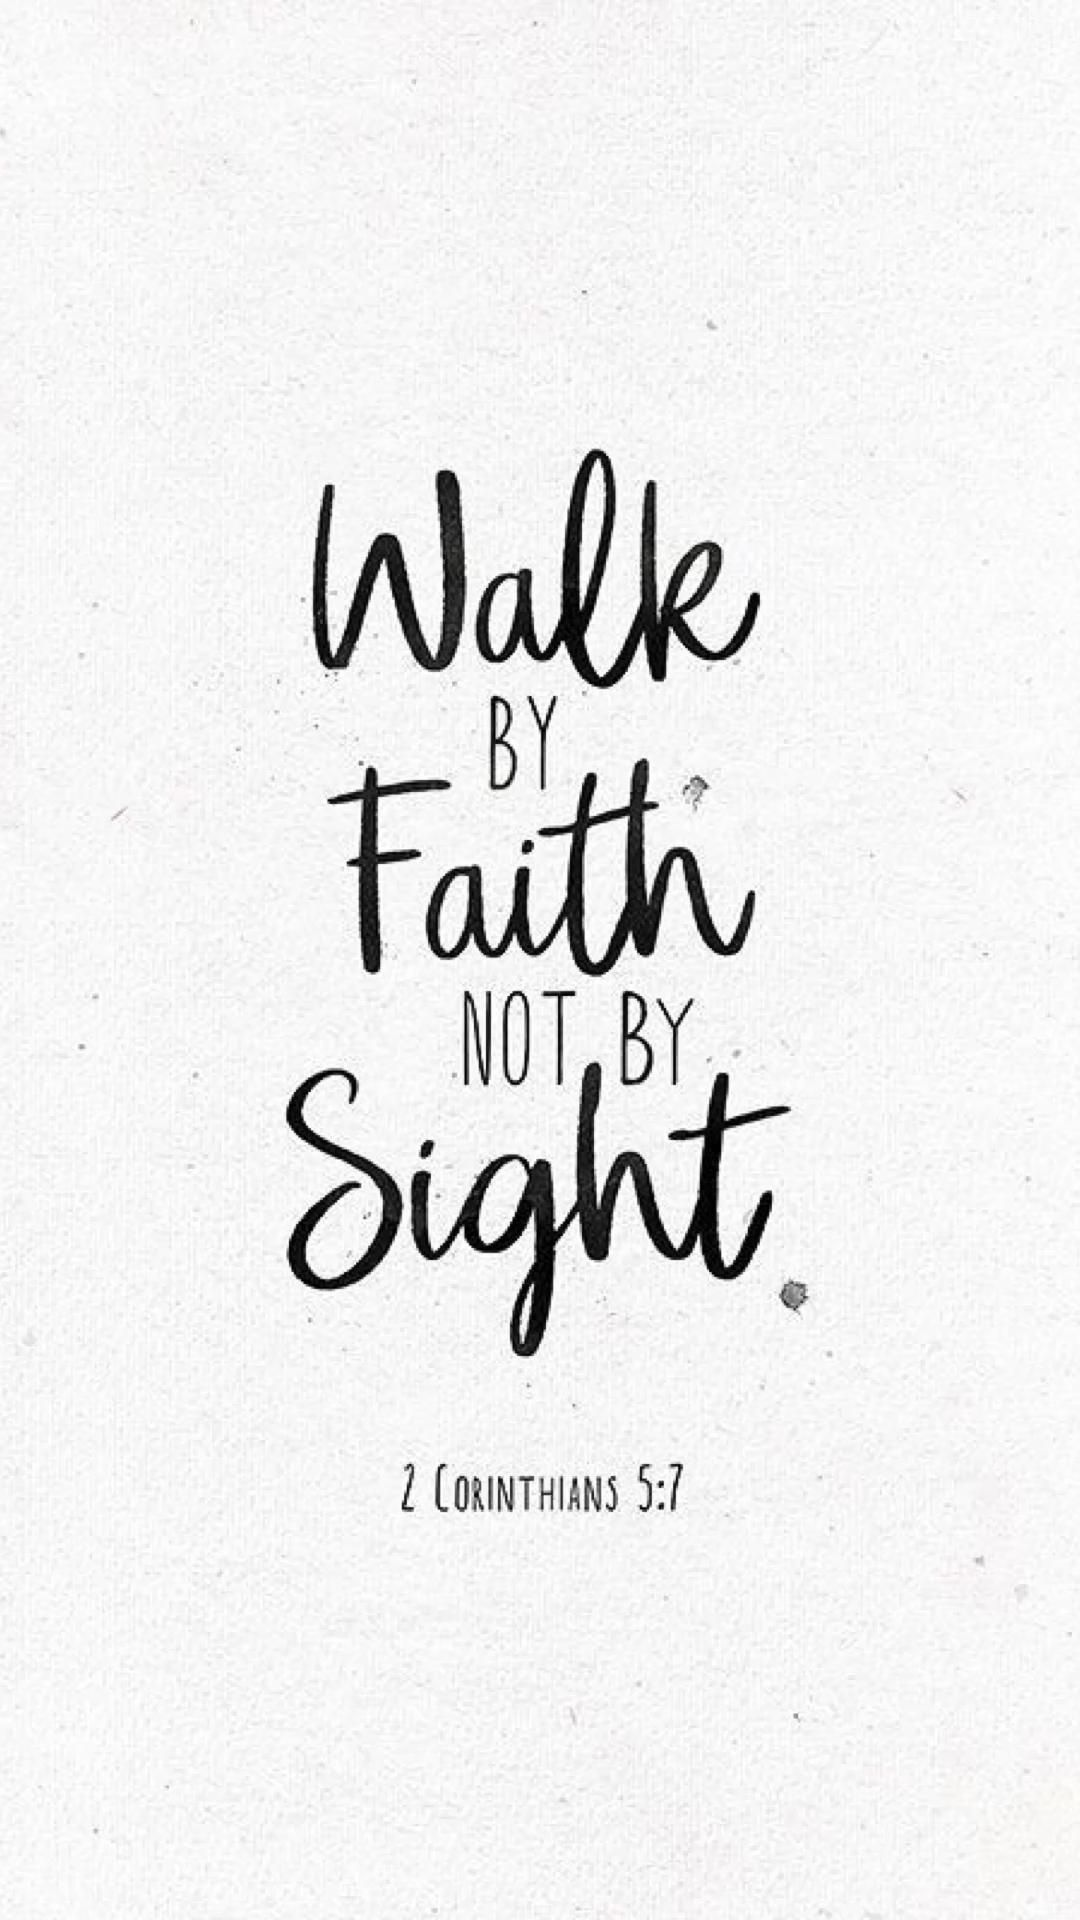 Walk in faith! God knows what you need!💗  #faith #God #quote #hope #positive